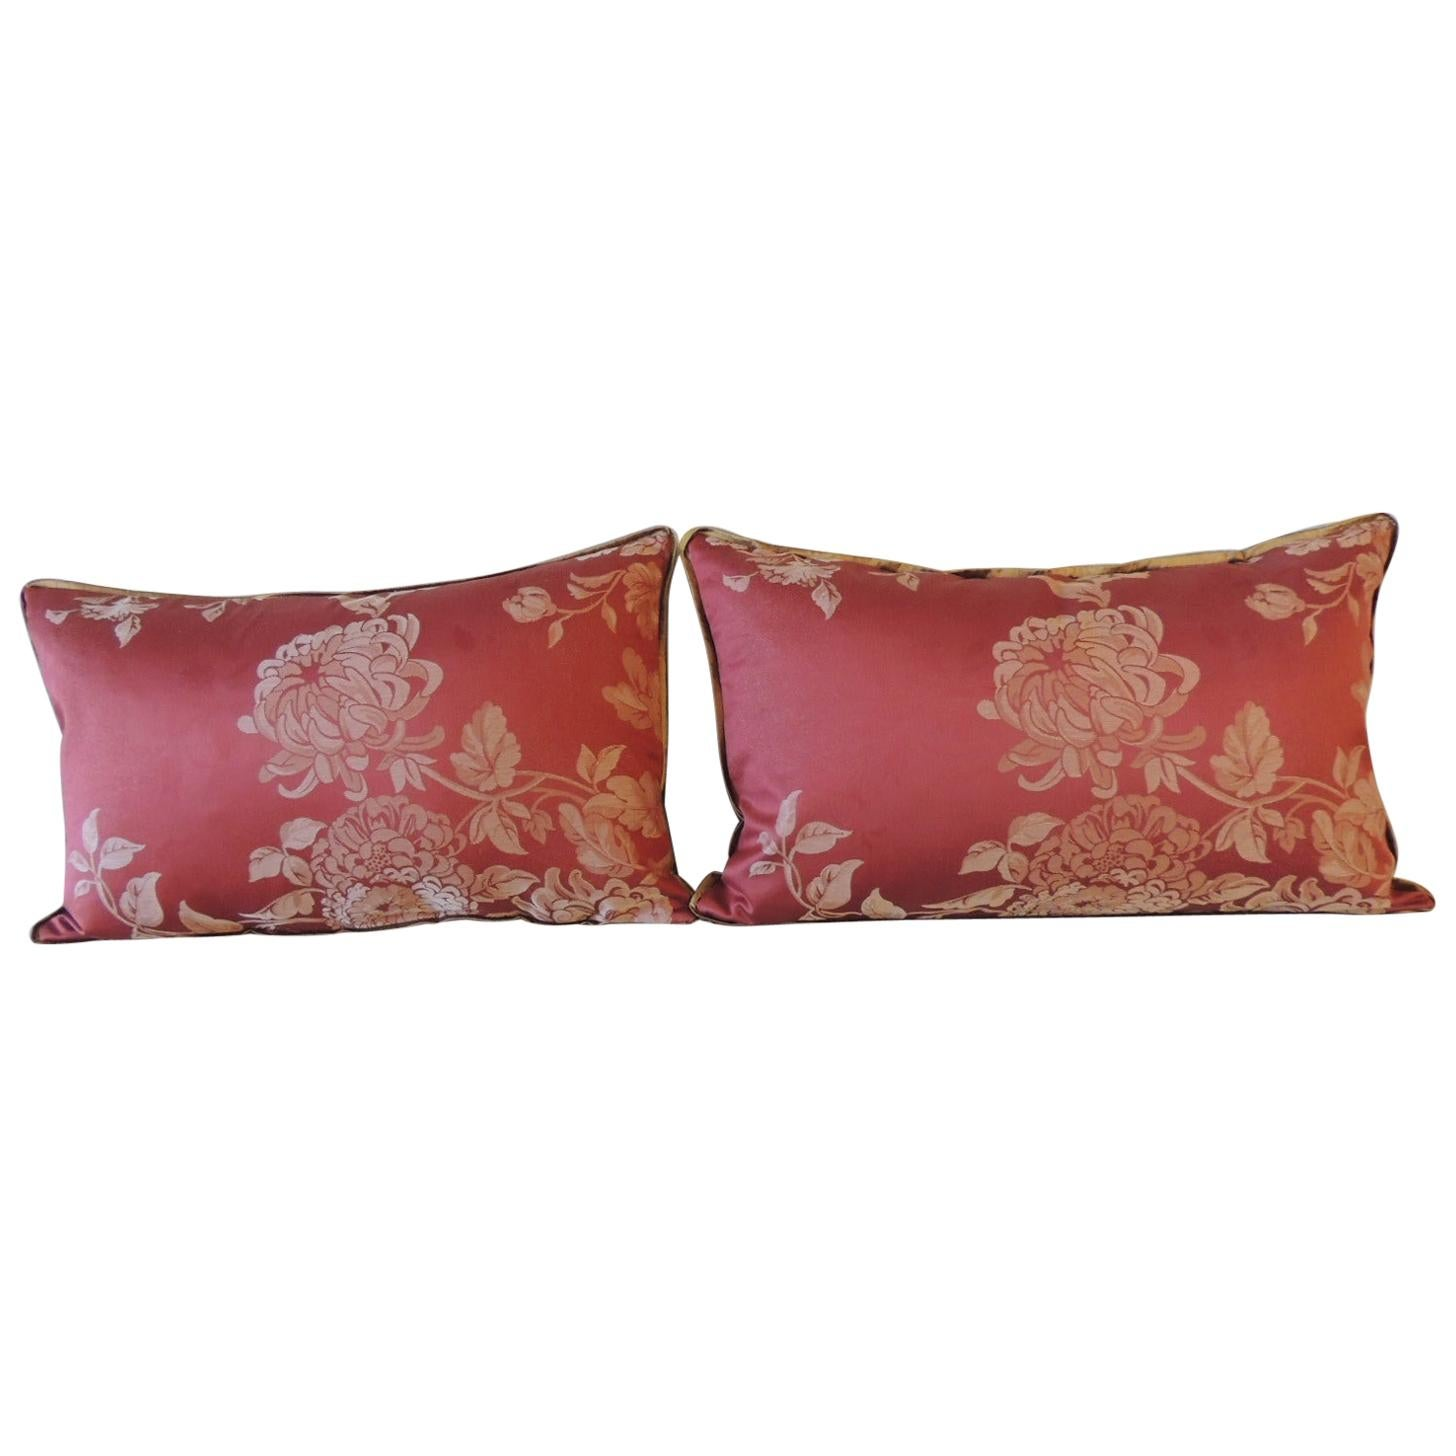 Pair of Red Satin Cotton Modern Lumbar Decorative Pillows